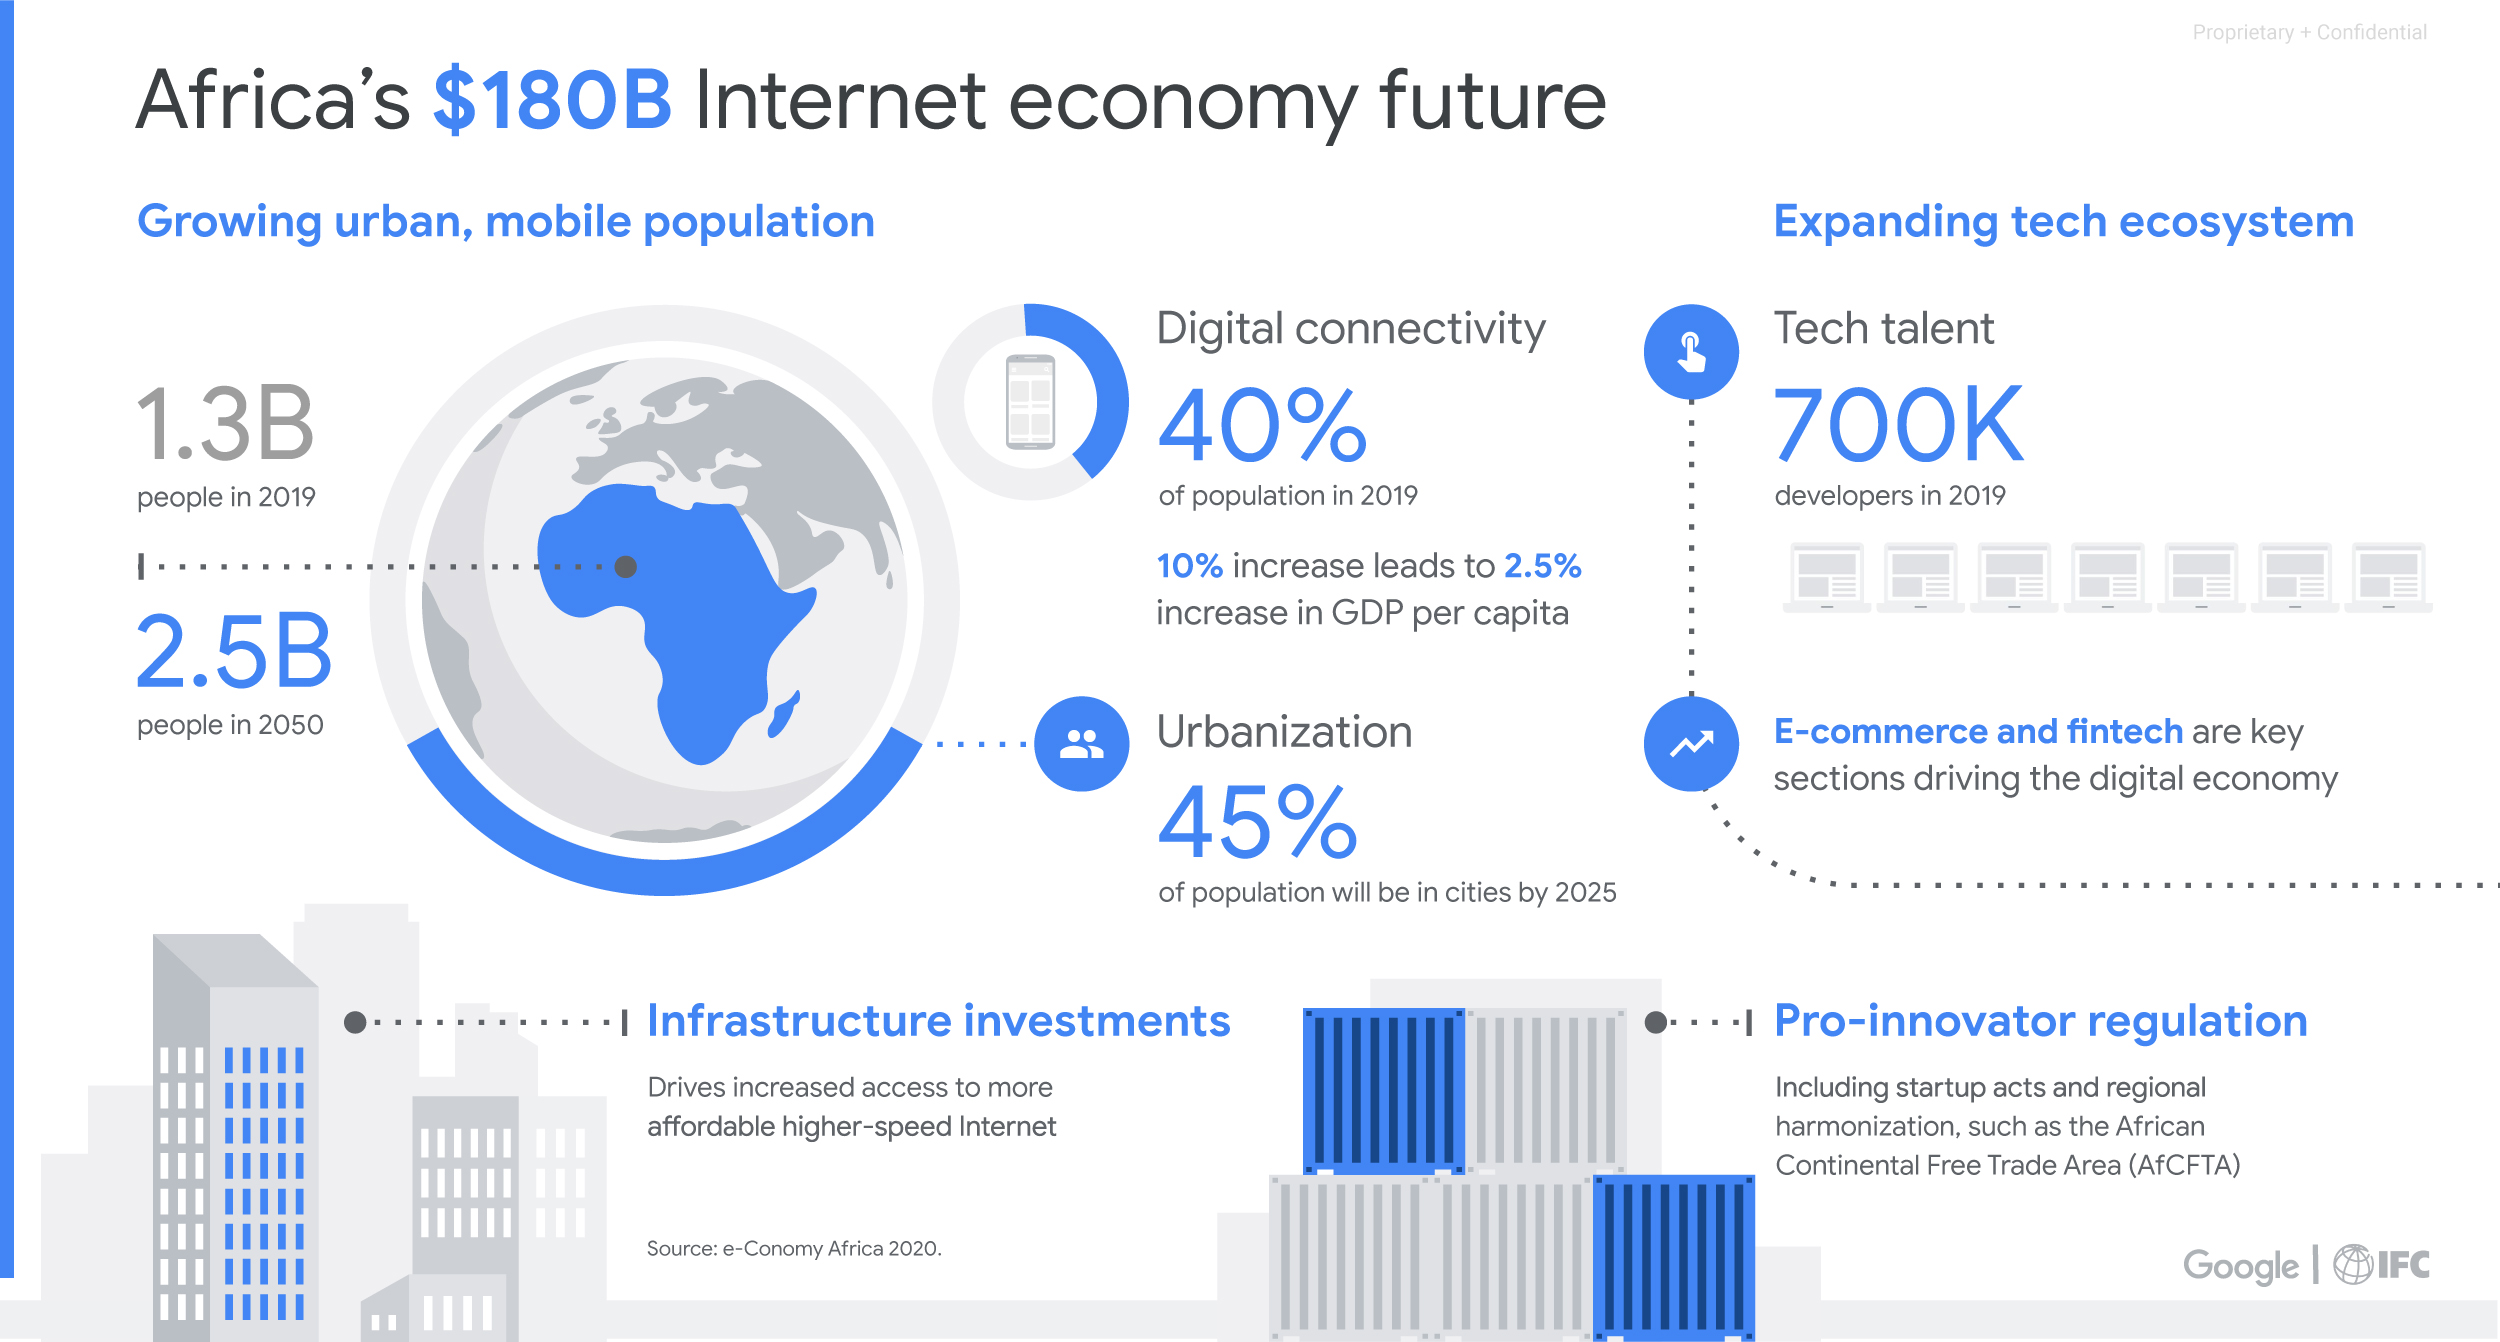 New Google-IFC report estimates Africa's Internet economy could be worth $180 billion by 2025